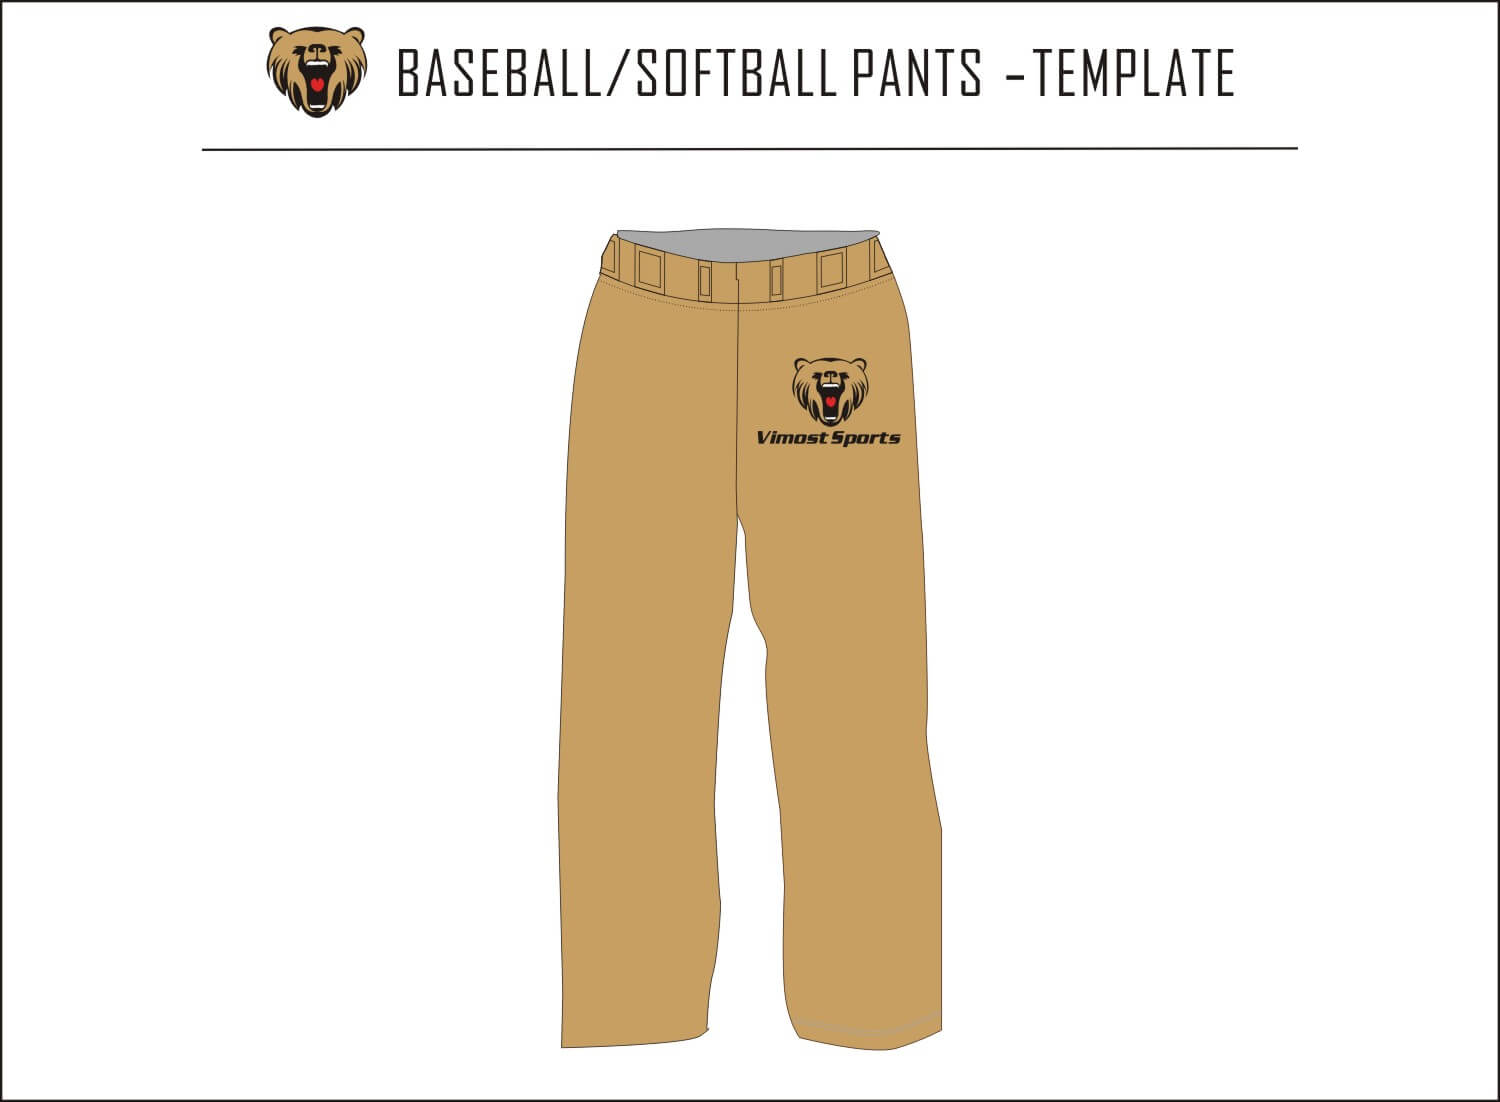 BASEBALL SOFTBALL PANTS-TEMPLATE